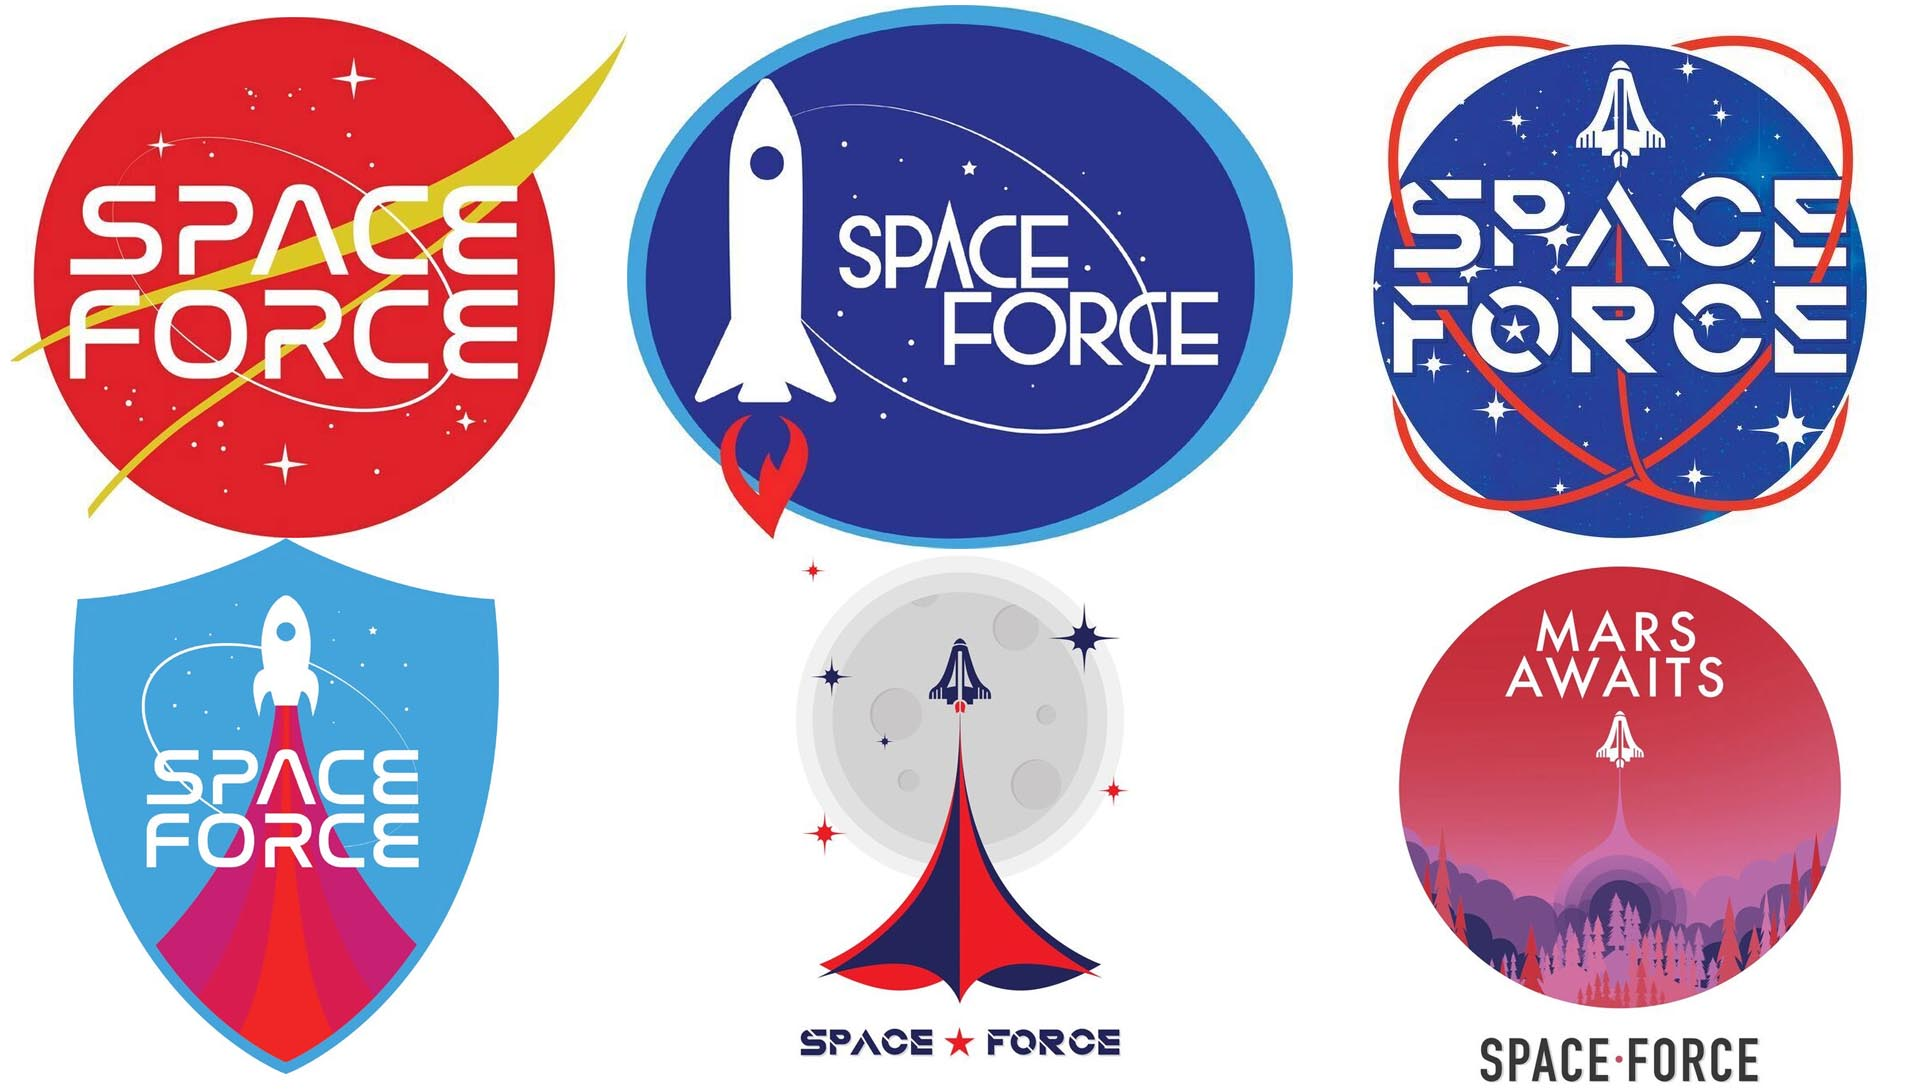 spaceforce_1533848238368.jpg